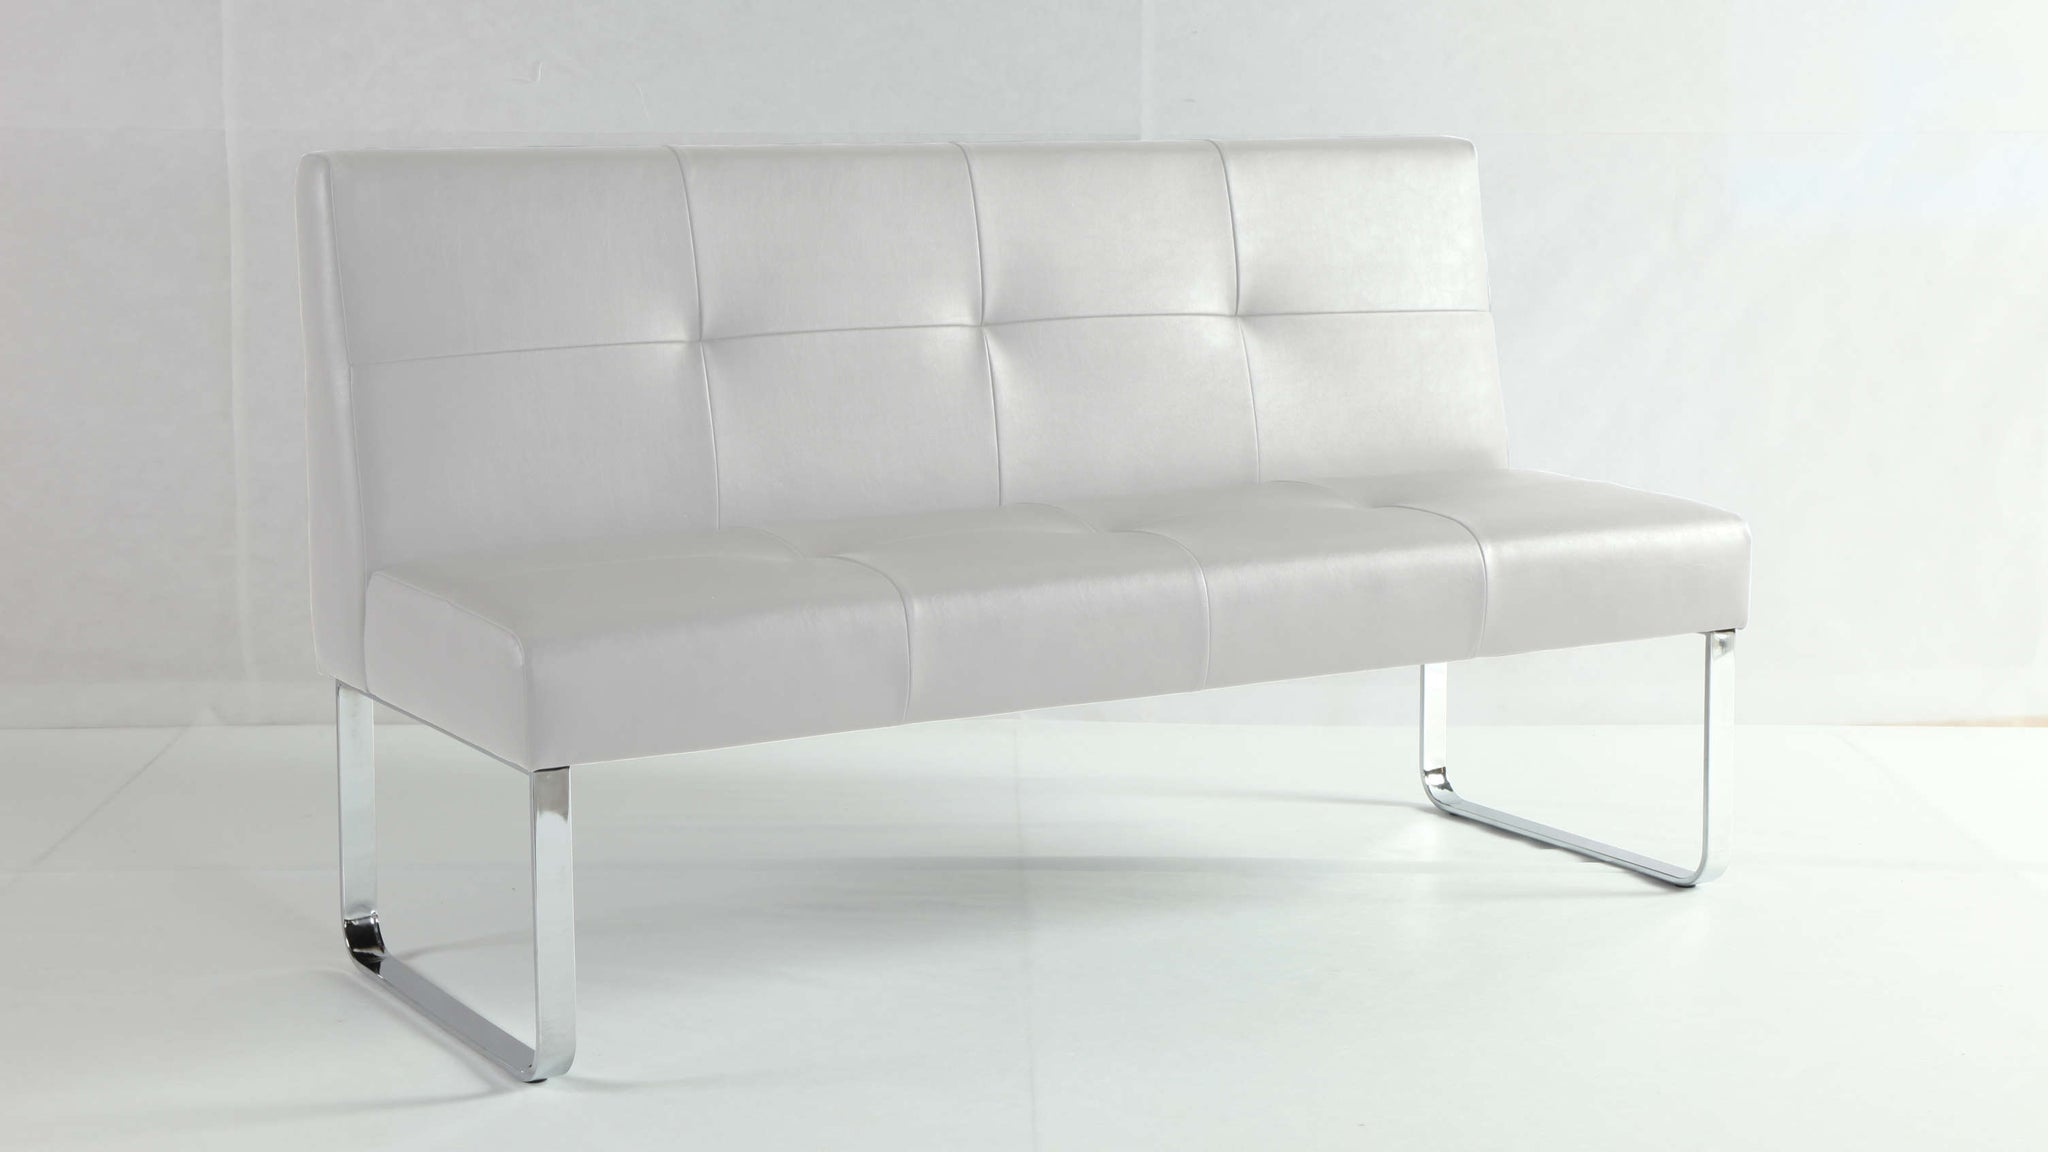 White Dining Bench with Backrest